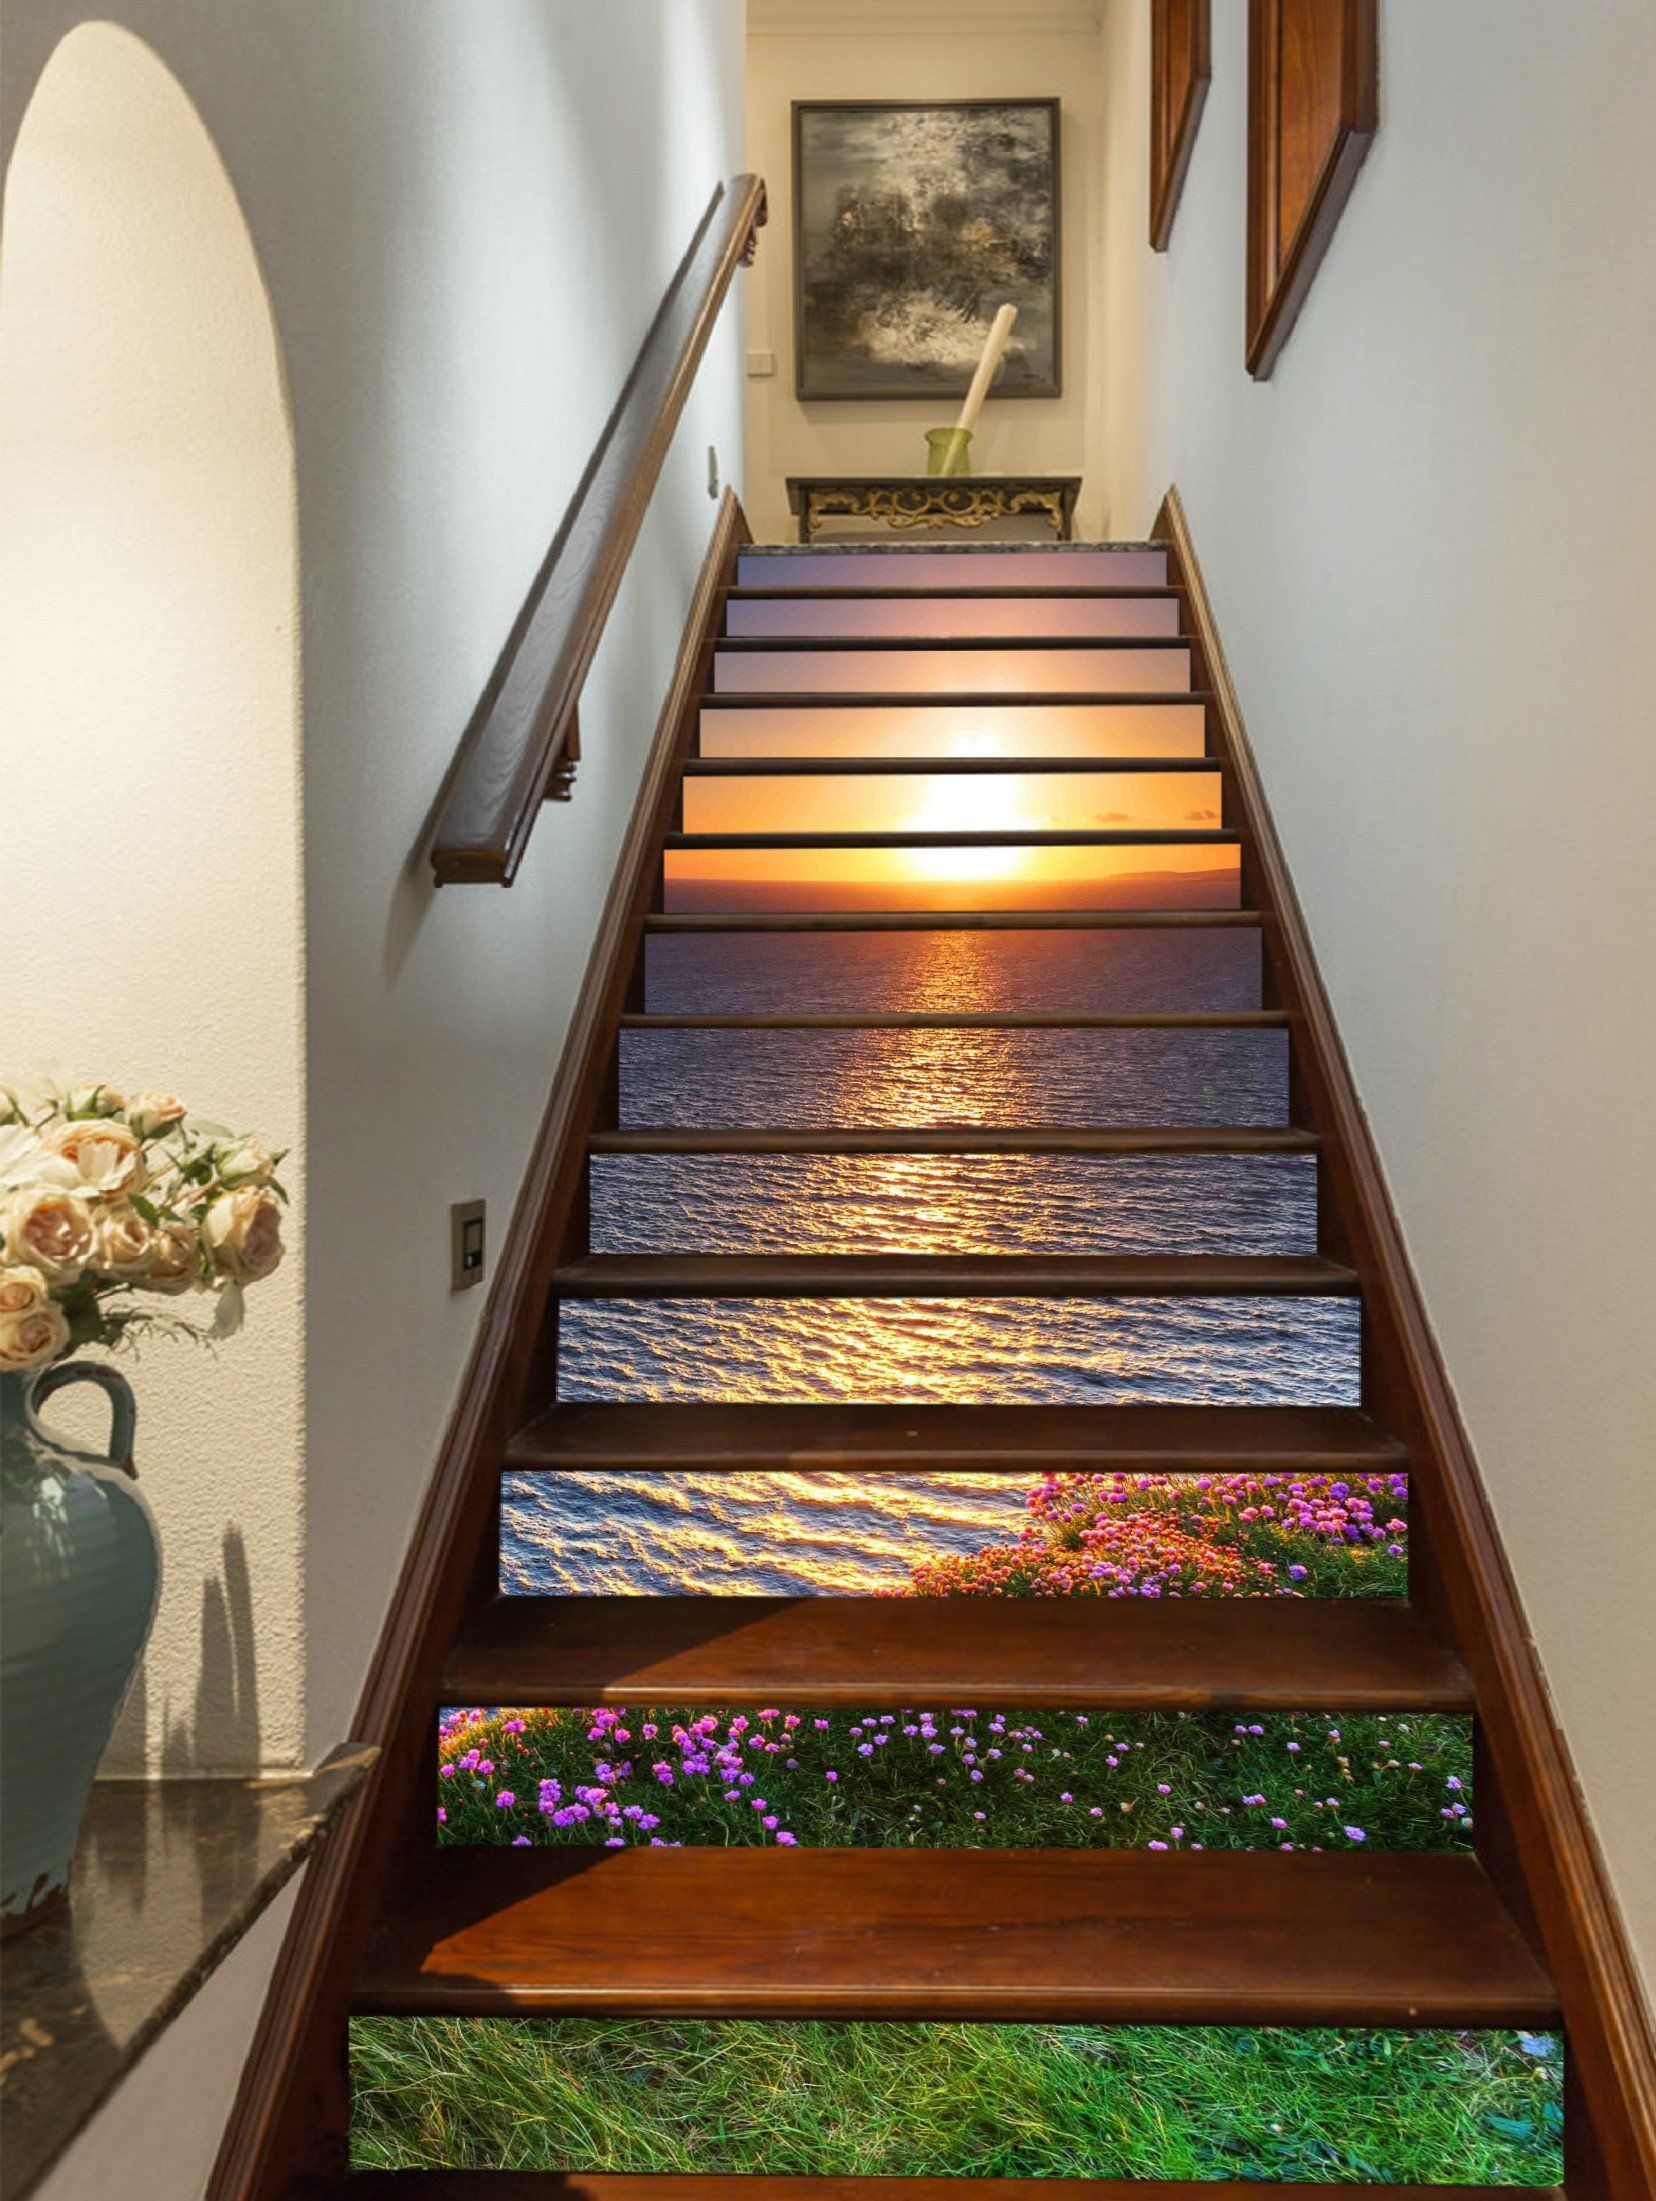 Best 3D Sea Sunset Flowers 728 Stair Risers Stair Risers 400 x 300